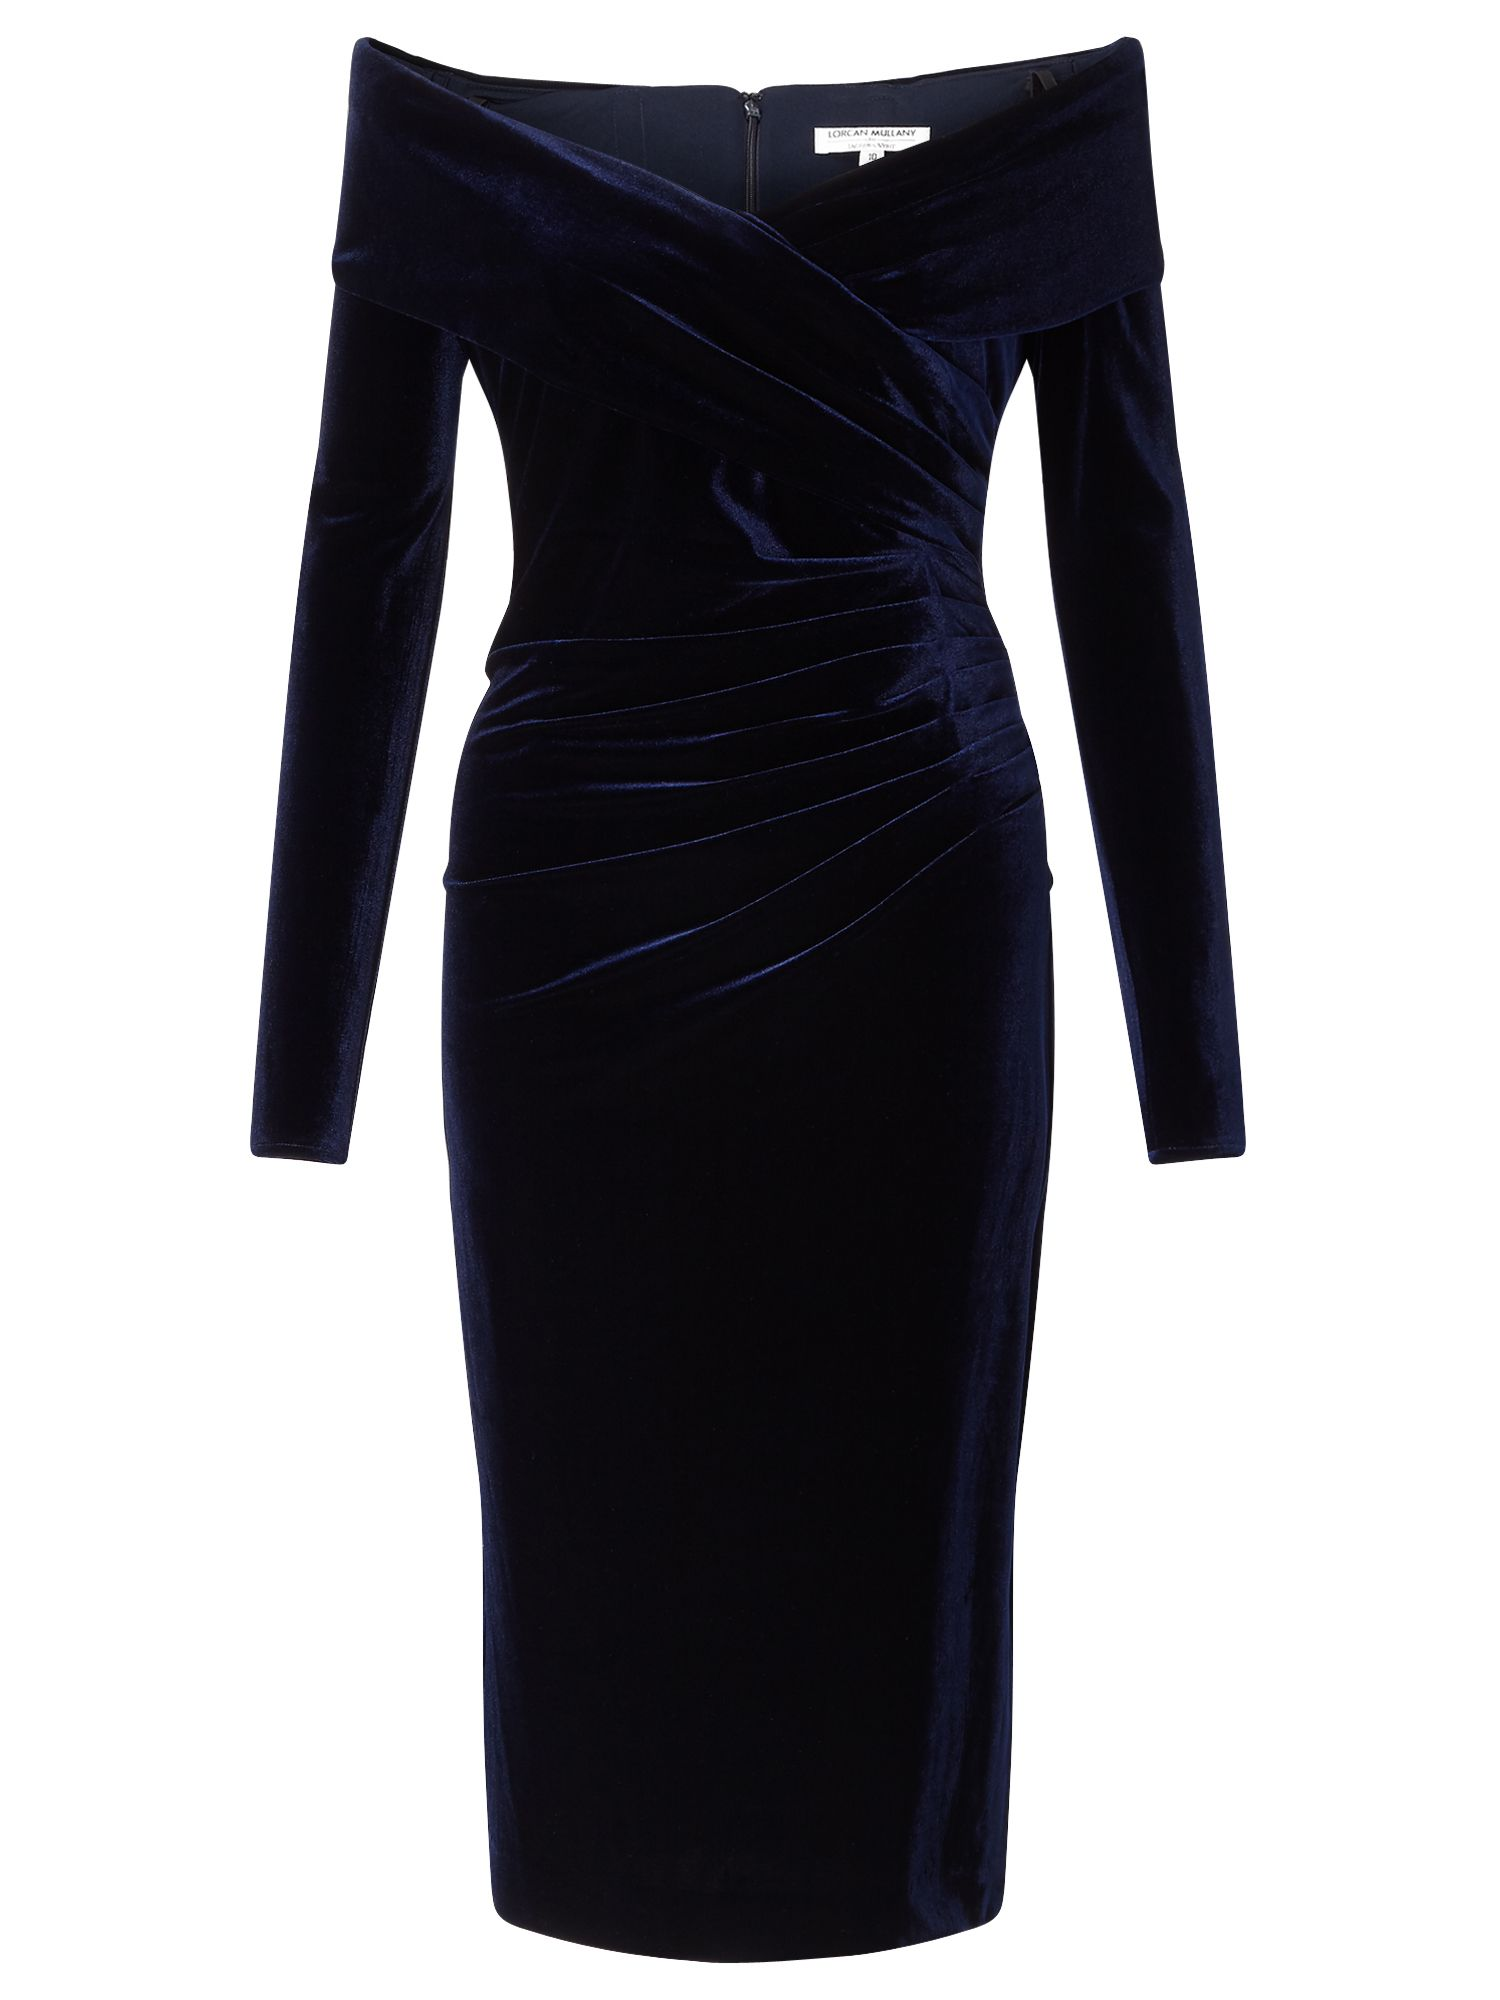 Jacques Vert Velvet Bardot Cocktail Dress Blue £299.00 AT vintagedancer.com